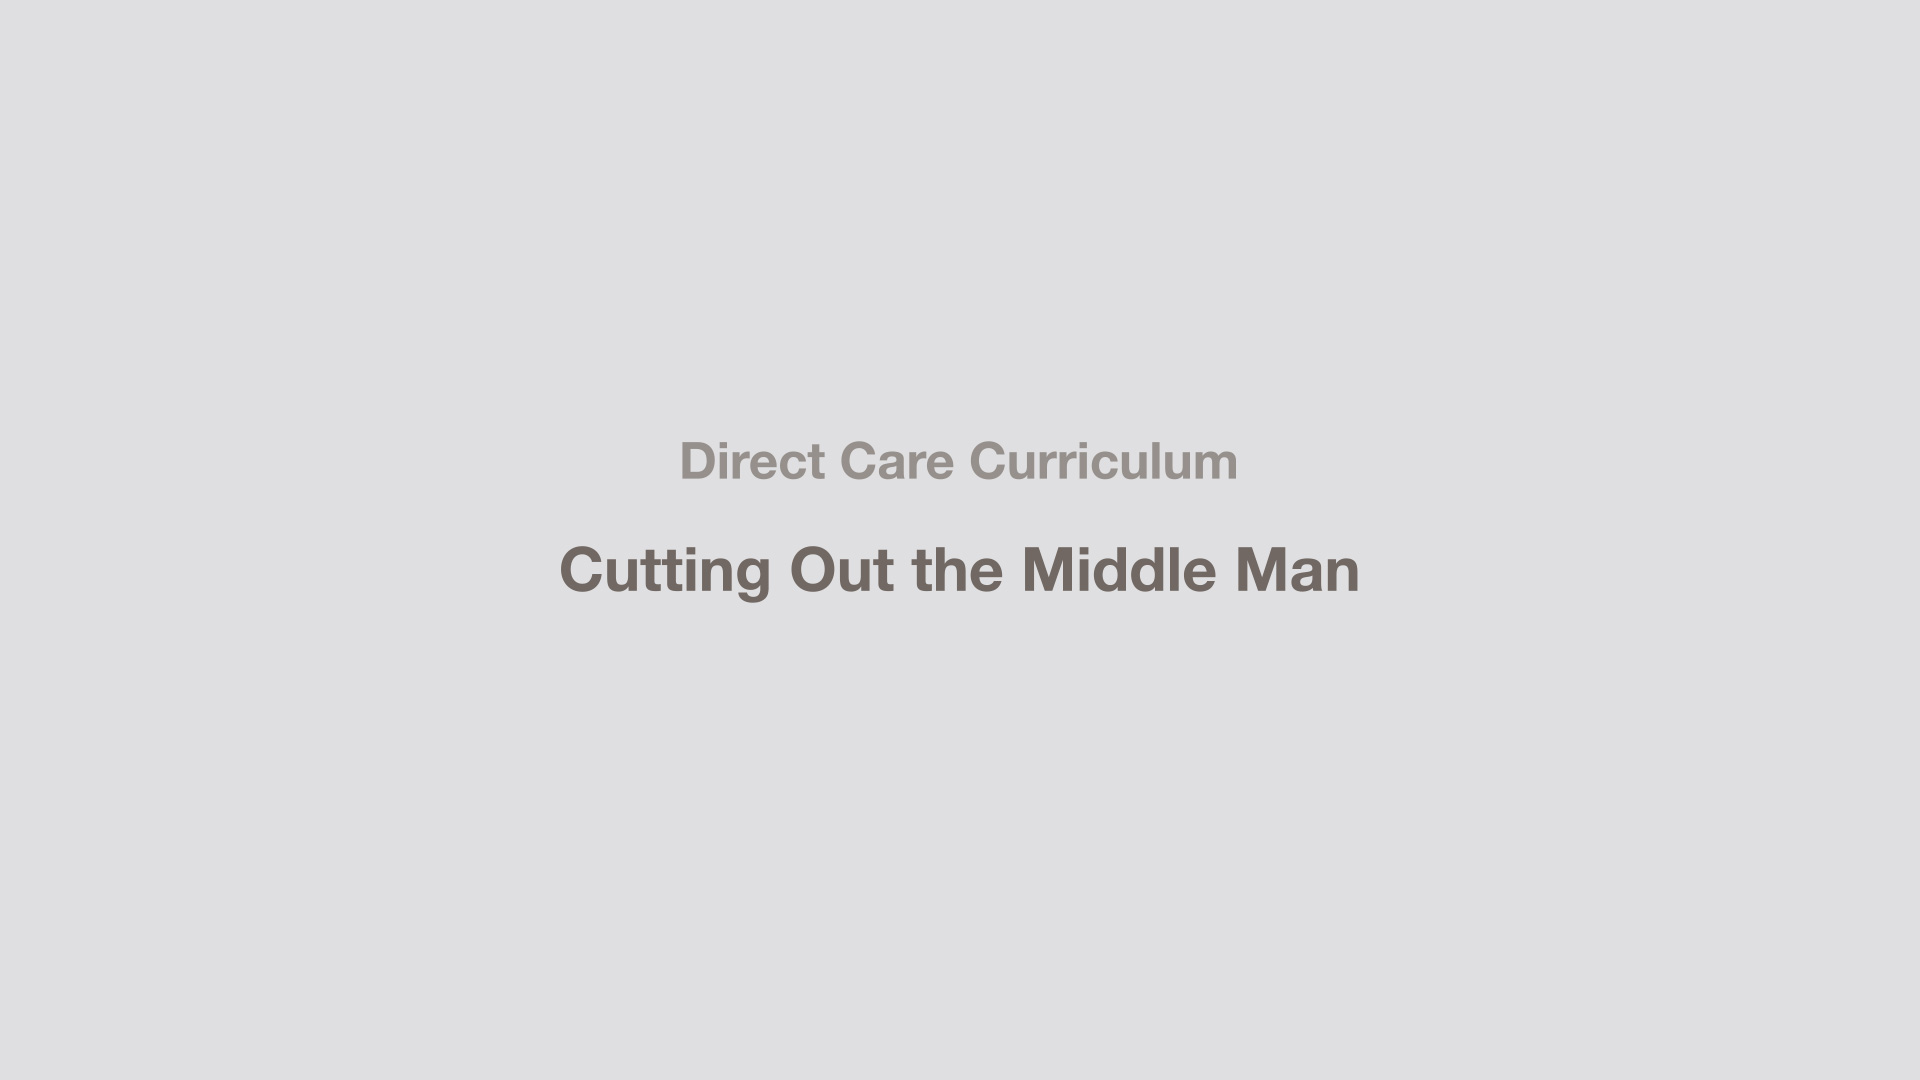 Cutting Out the Middleman